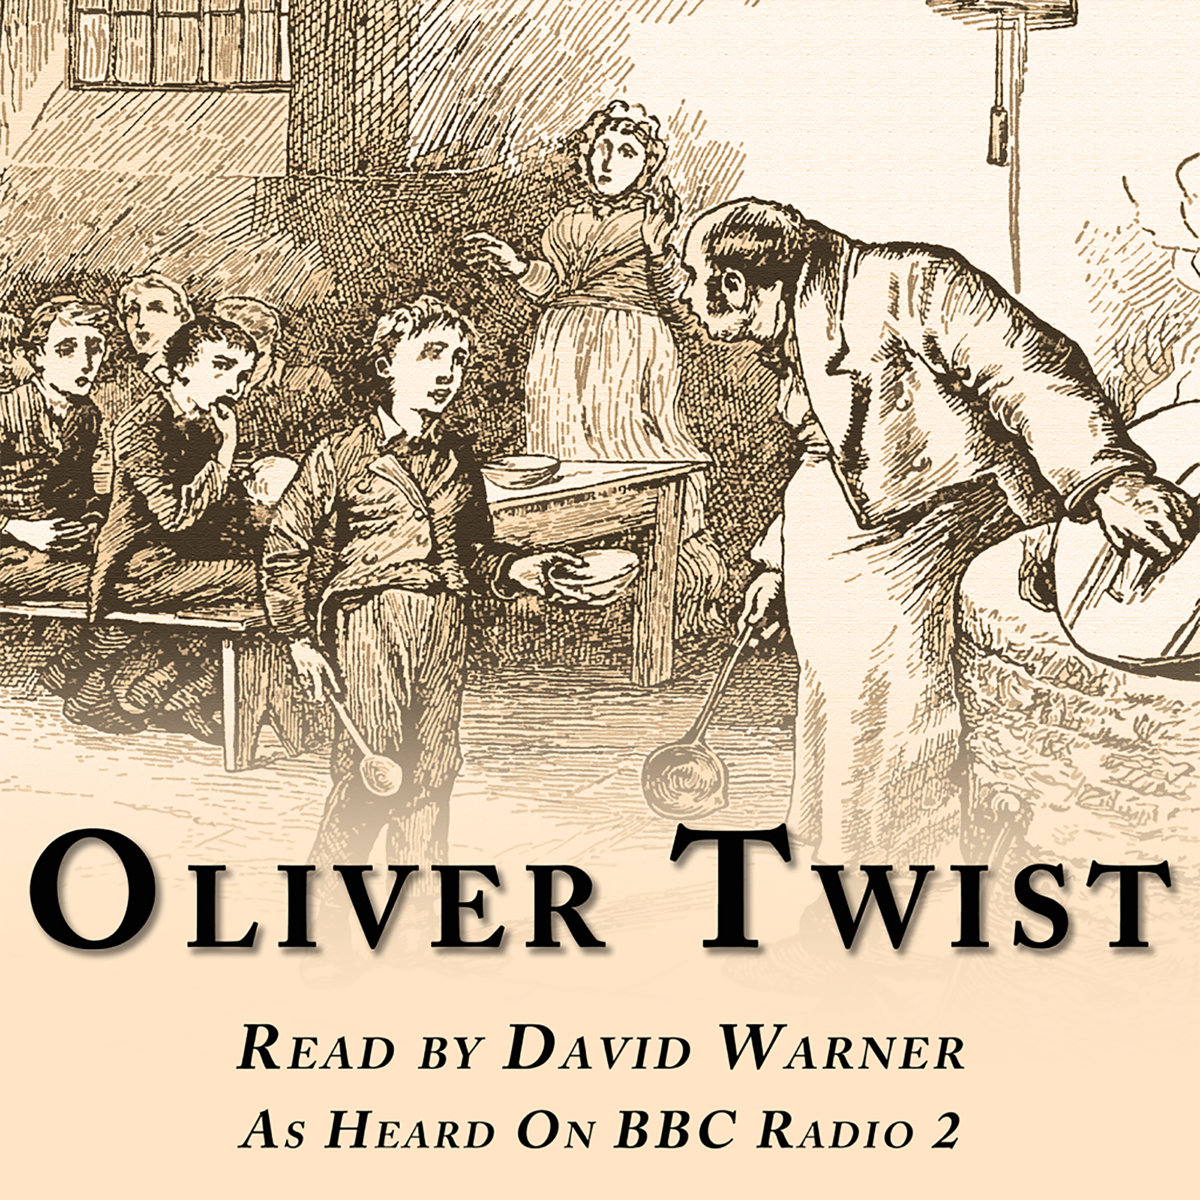 charles dickens oliver twist essays Charles dickens - oliver twist essays: over 180,000 charles dickens - oliver twist essays, charles dickens - oliver twist term papers, charles dickens - oliver twist research paper, book.